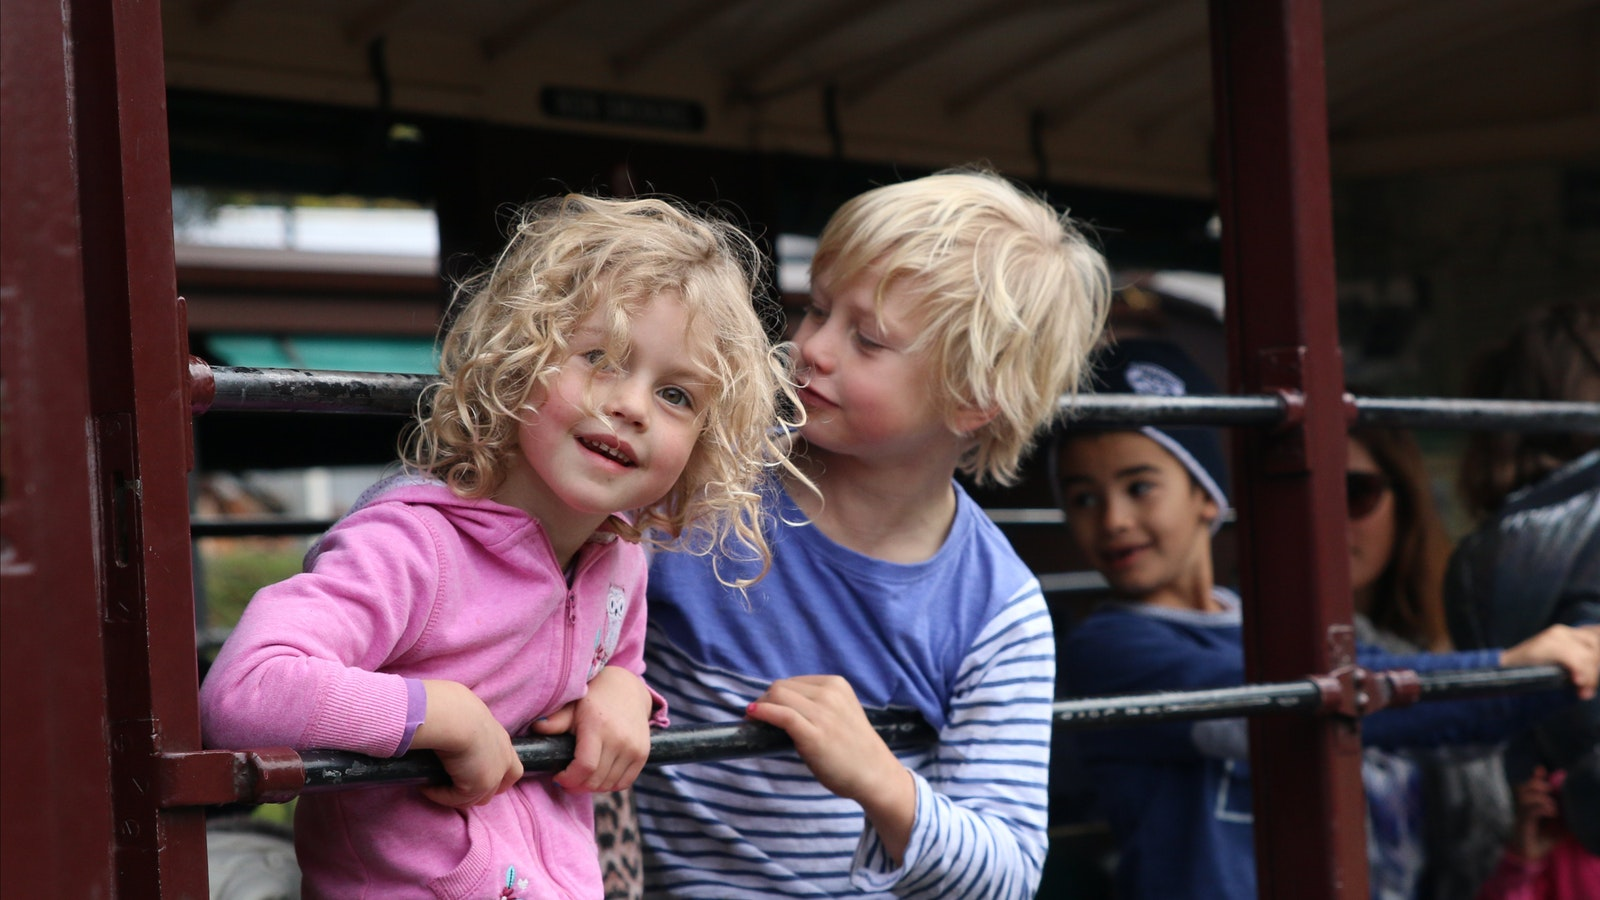 Children on board train